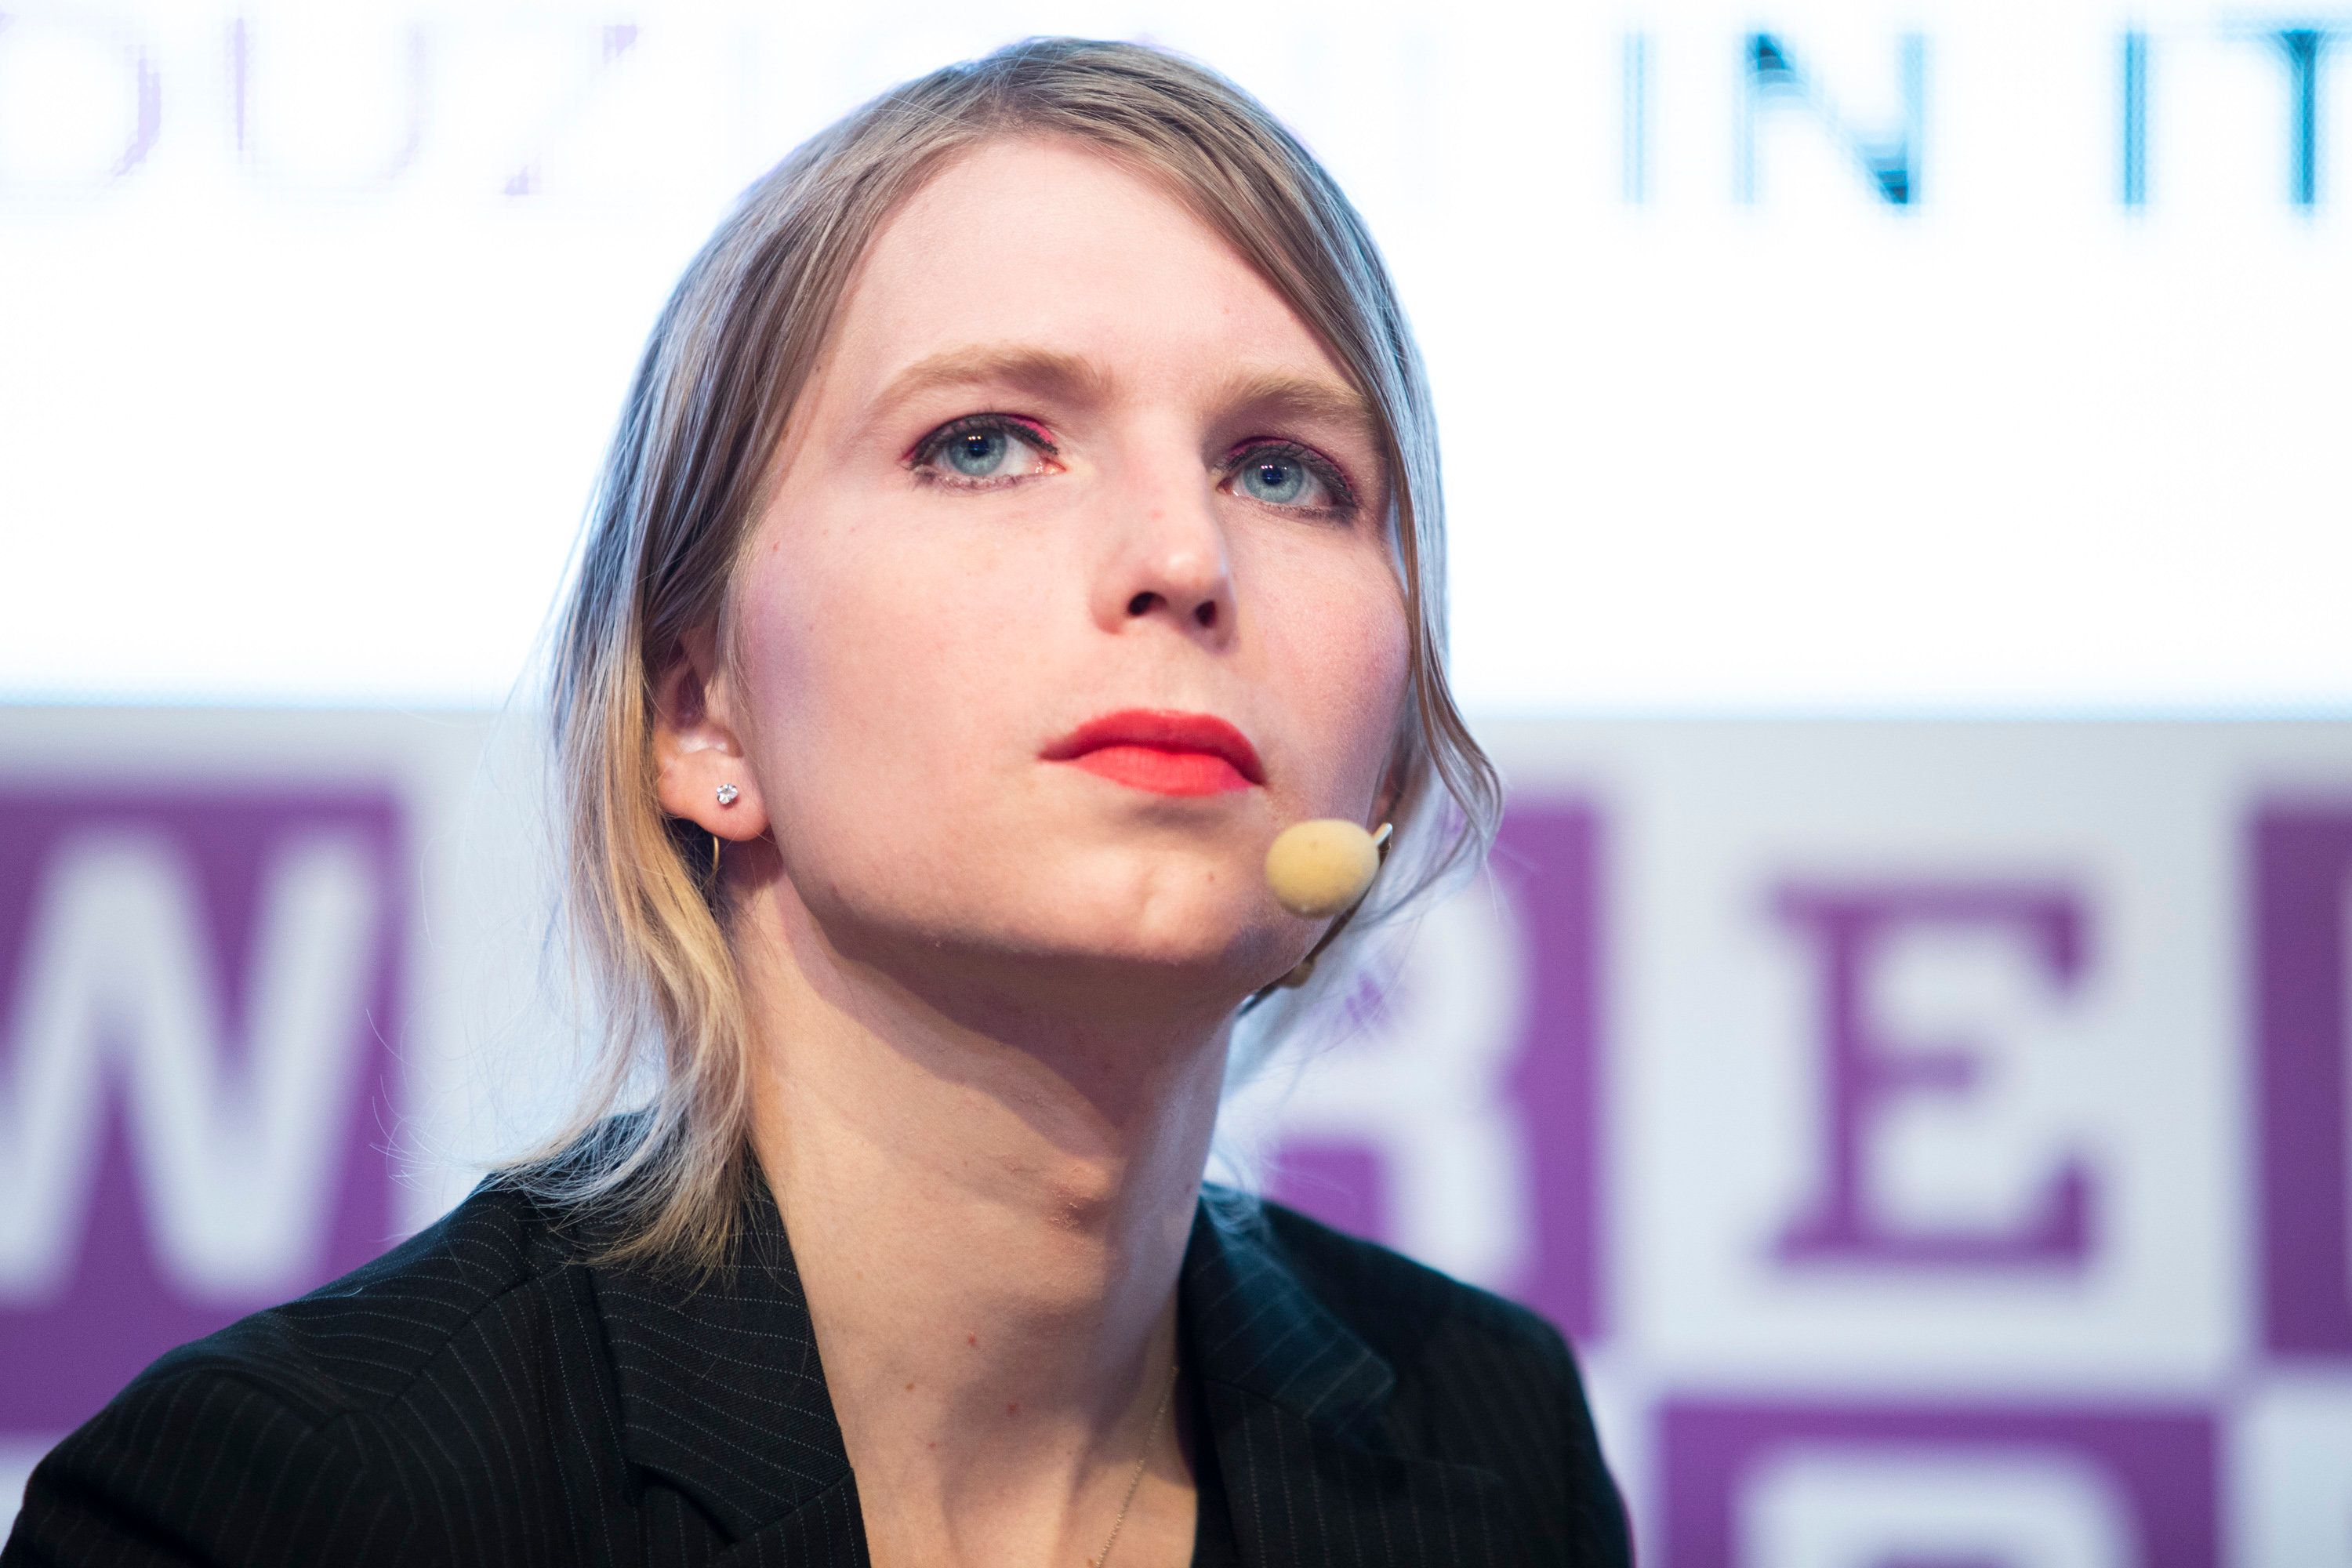 Chelsea Manning, the former Army intelligence analyst who pleaded guilty to leaking government files, has been scheduled to b